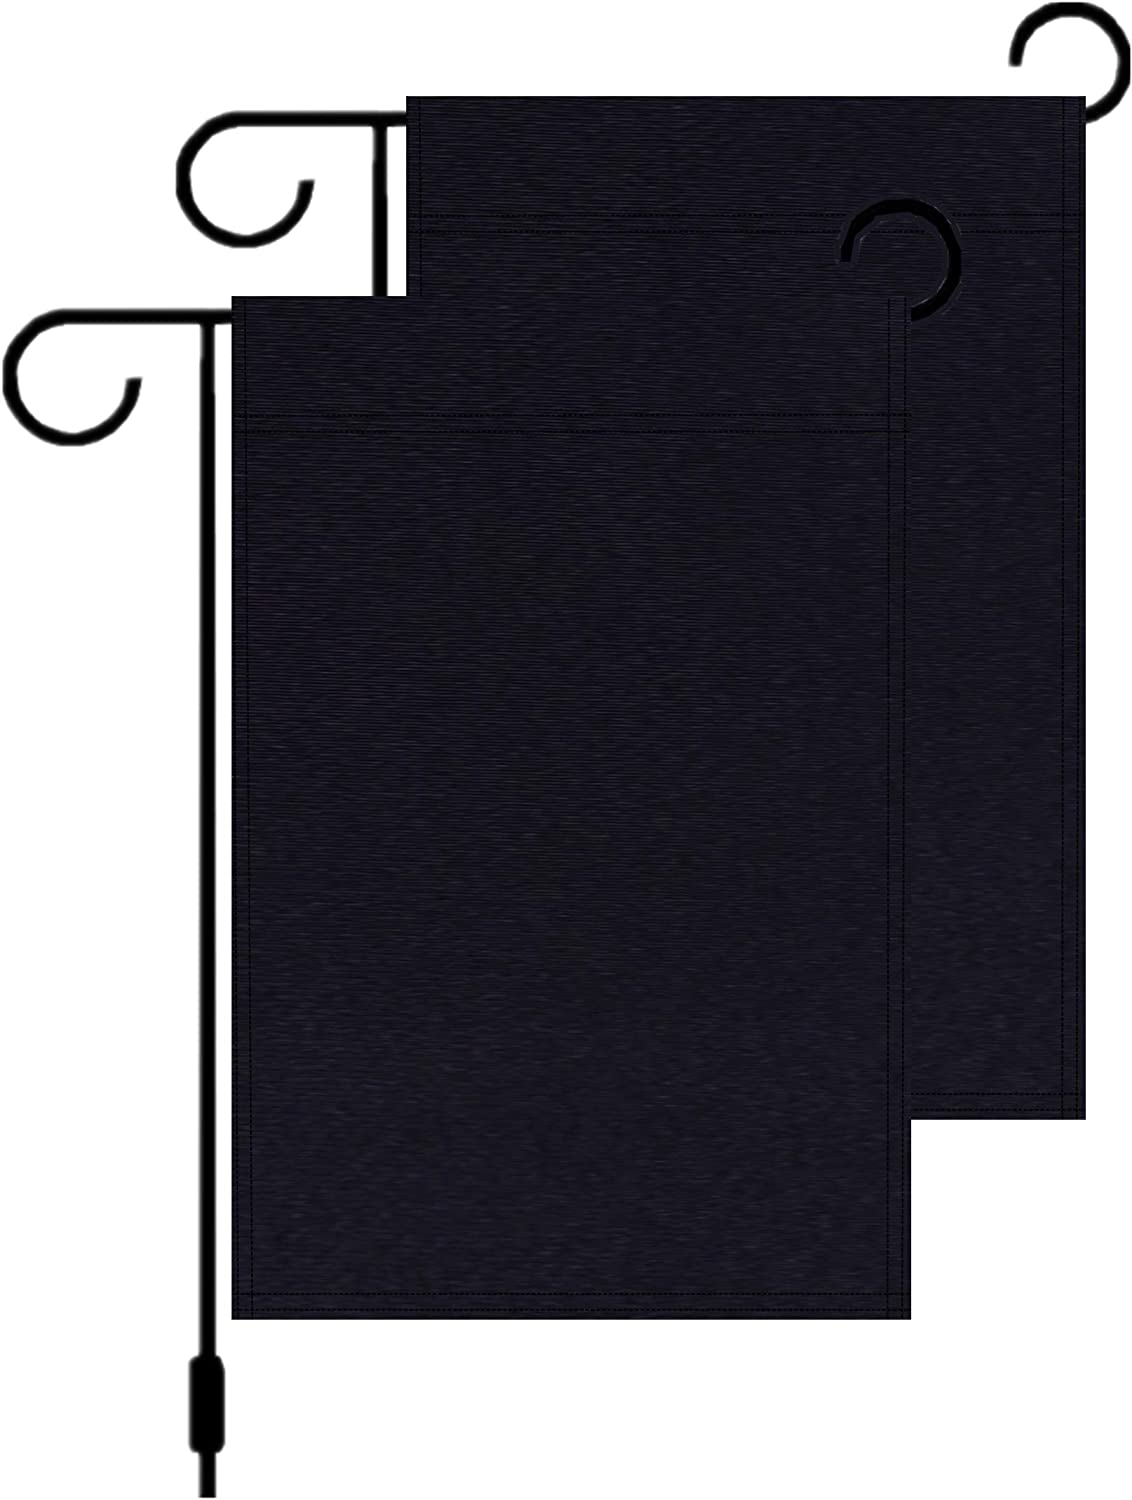 2 Pcs Solid Black Lawn Garden Flags,Double-Sided Plain Black Blank Parade Banners Yard DIY Flags - 12 x 18 Inch Perfect Decor for Outdoor Yard Porch Patio Lawn